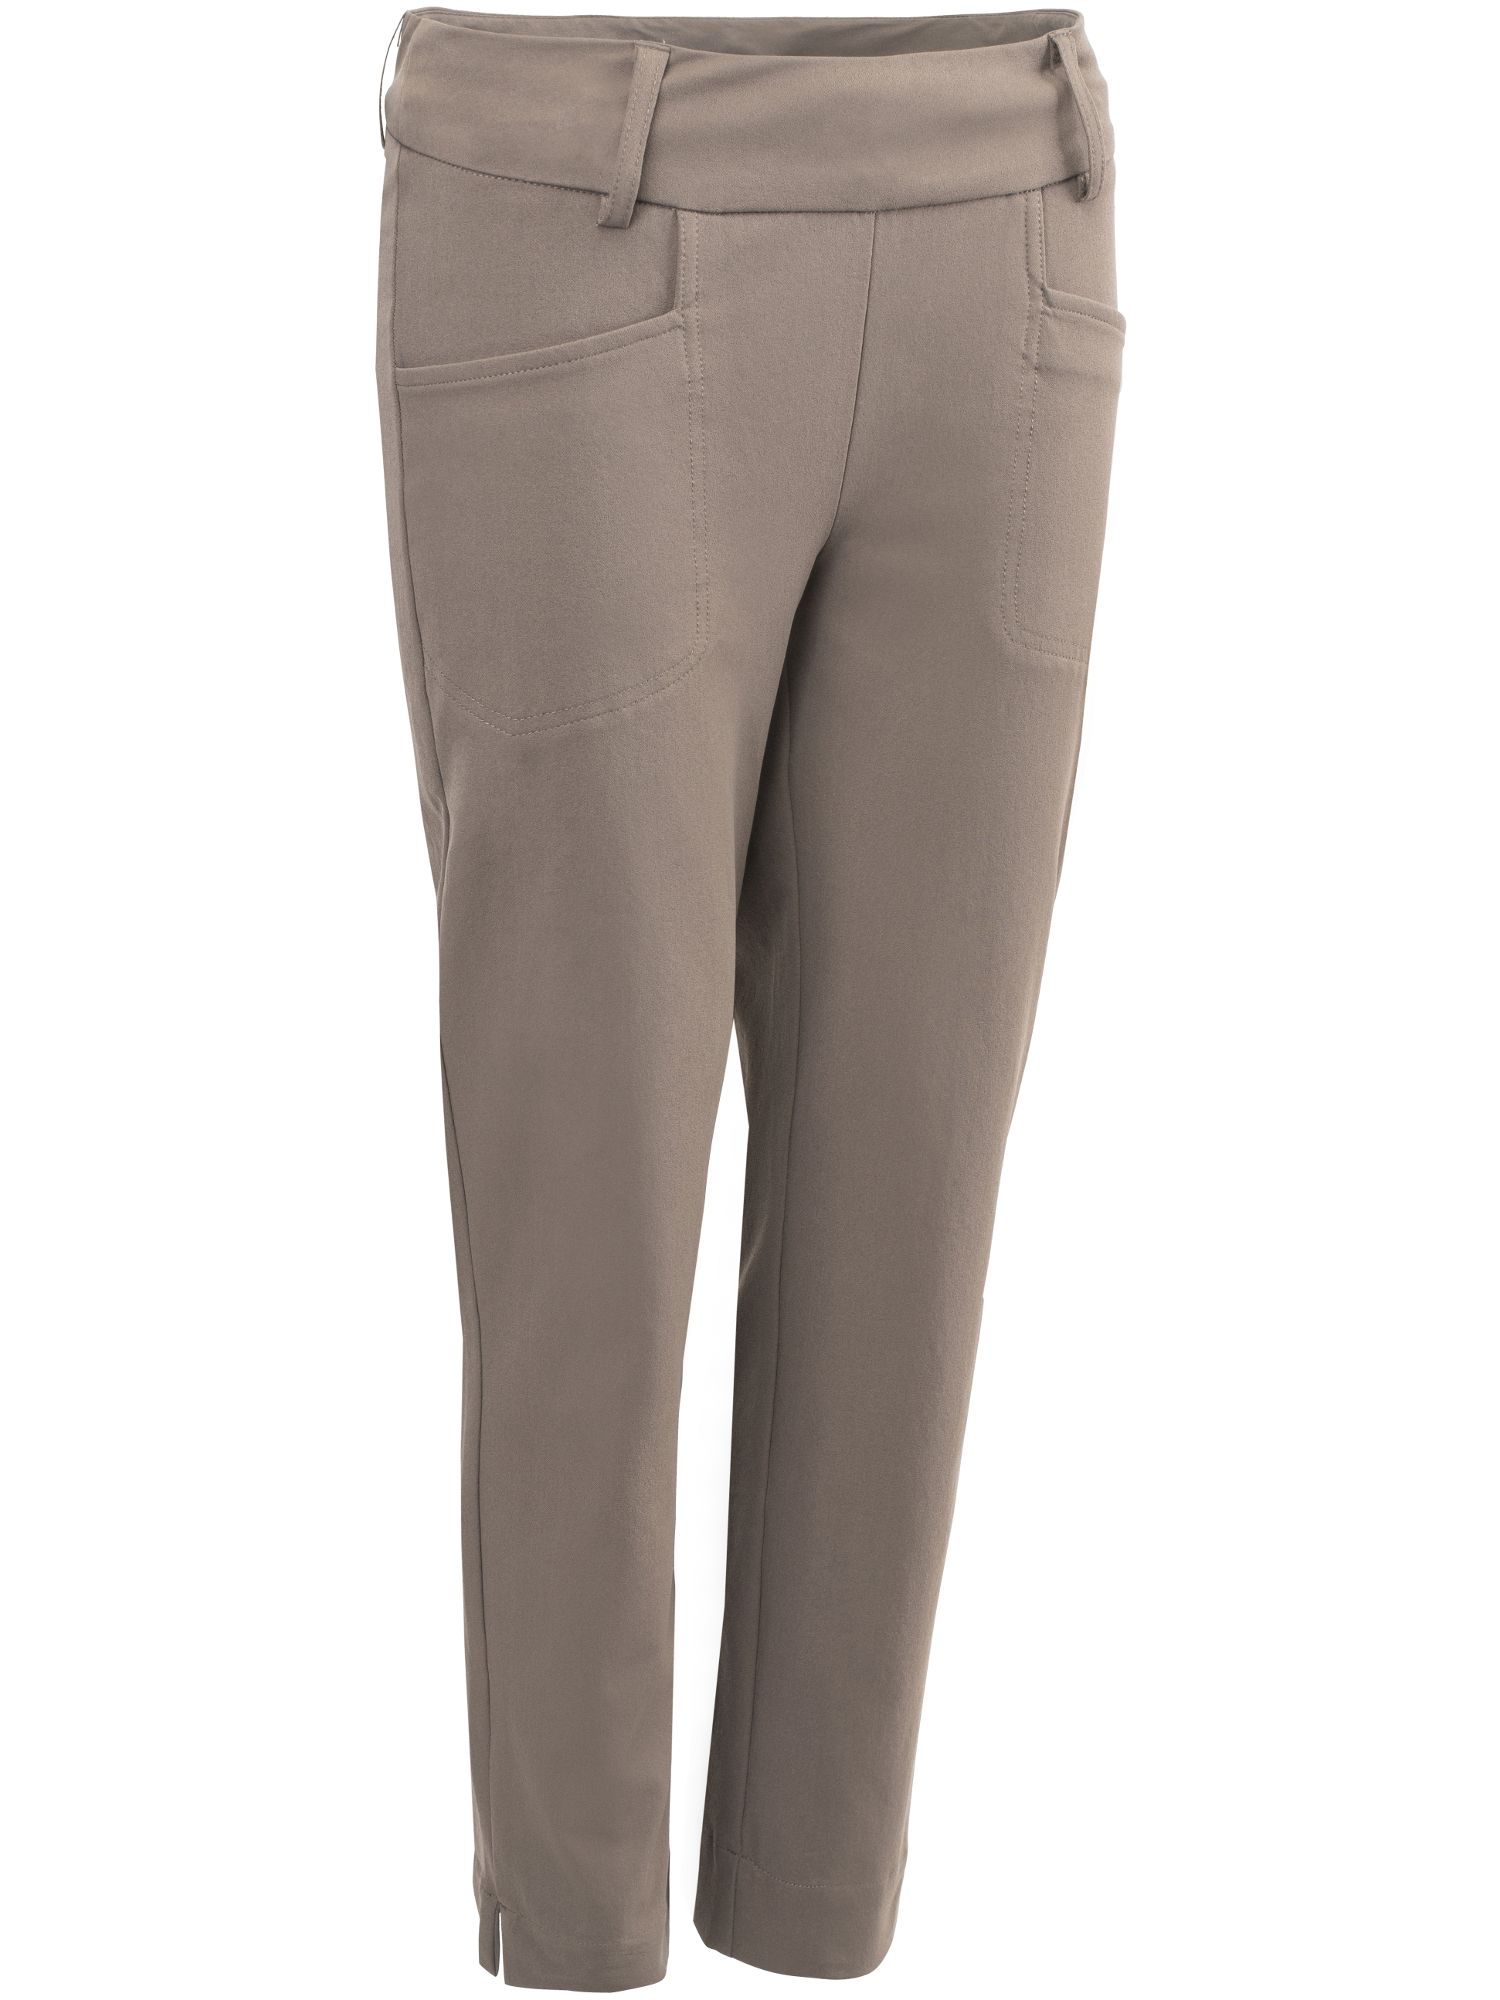 Abacus Divine 78 Trousers, White